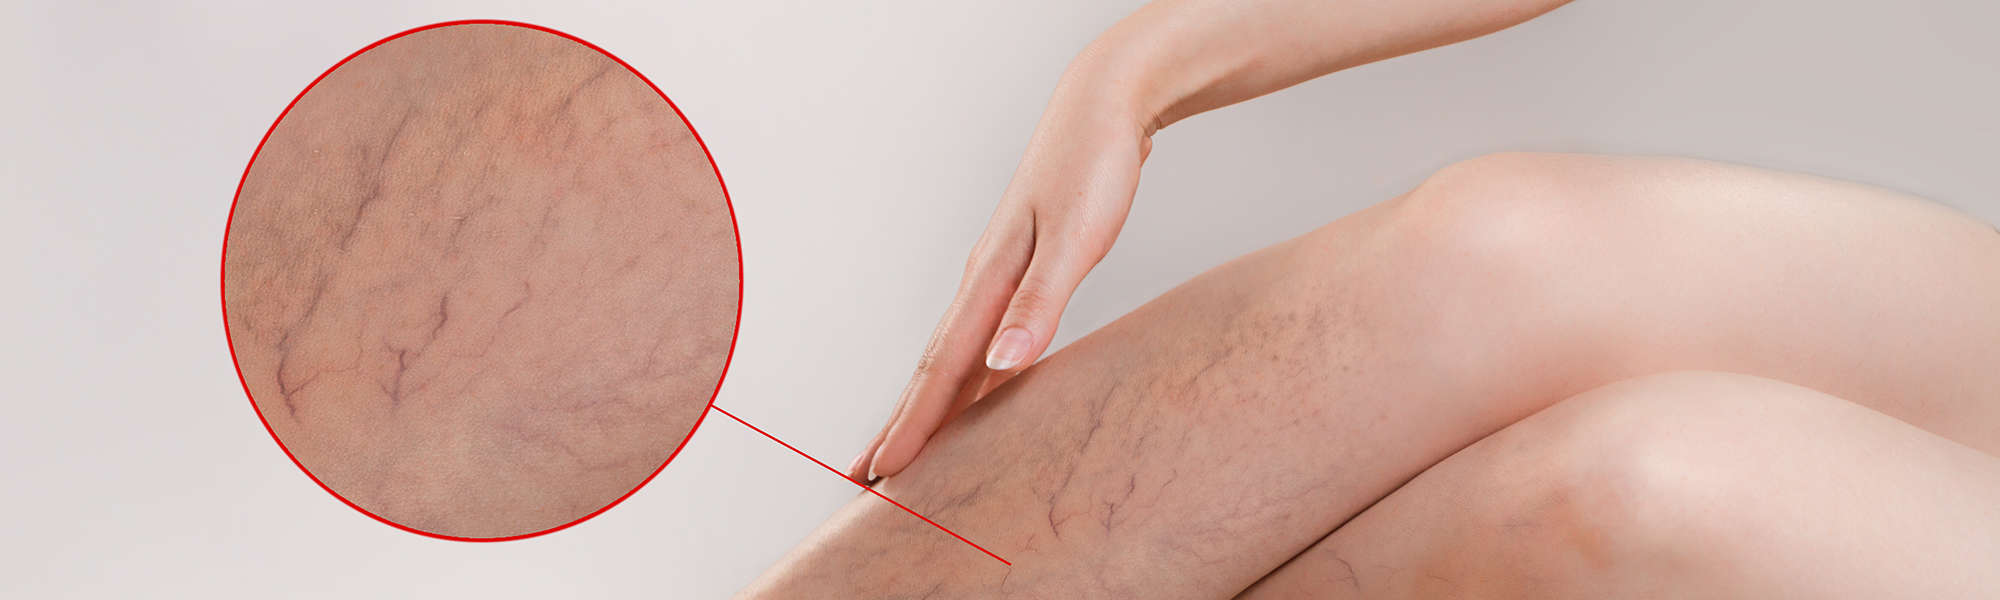 What Are Varicose Veins and How Can I Treat Them at Home?